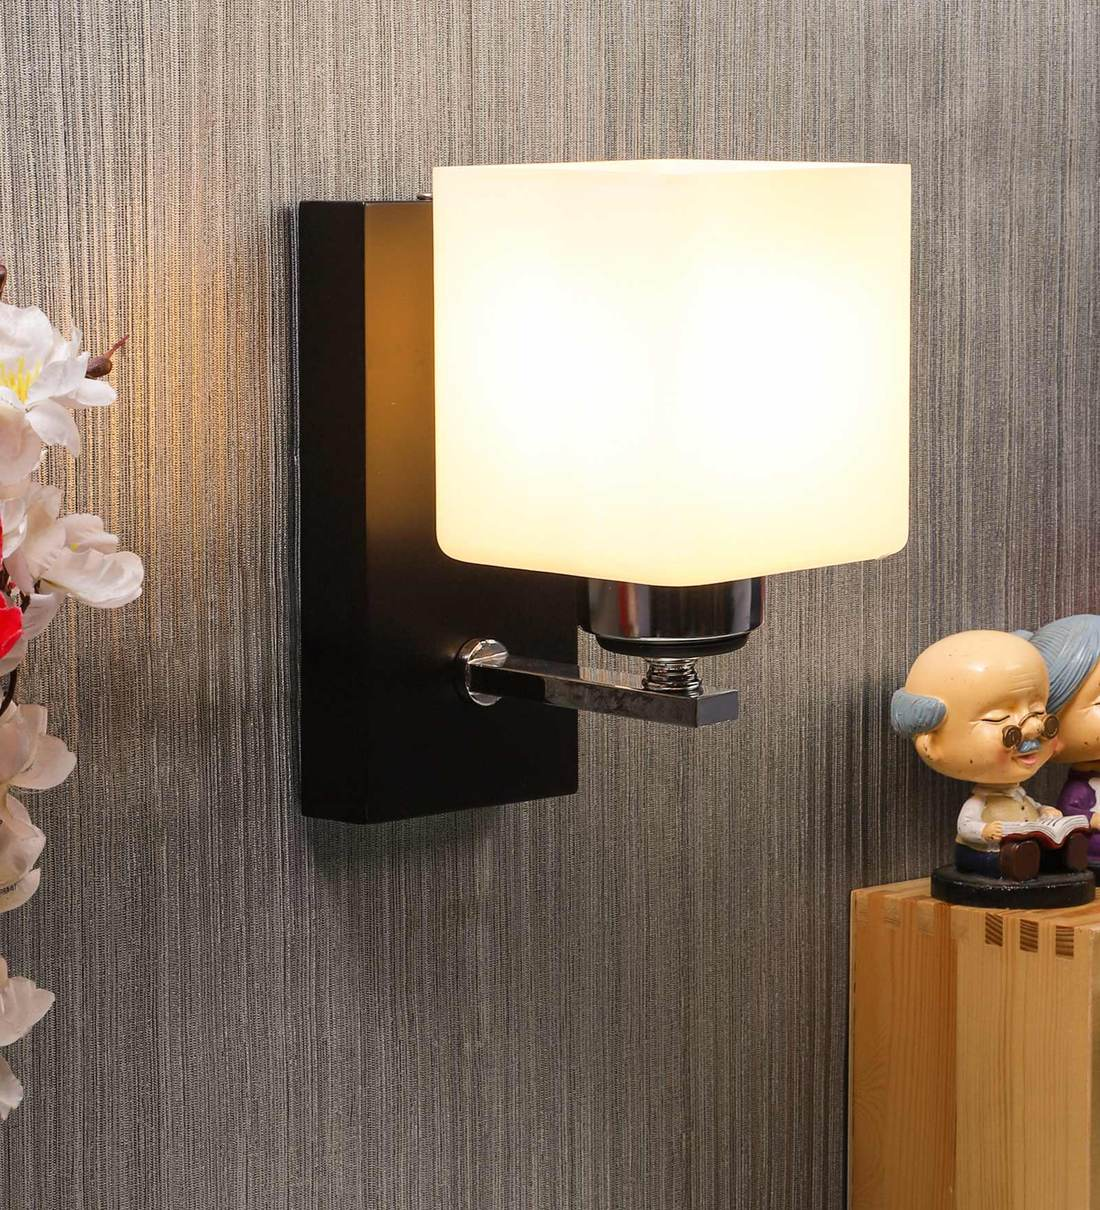 Buy Wooden Wood Wall Light By Eliante By Jainsons Lights Online Contemporary Wall Sconces Wall Lights Lamps Lighting Pepperfry Product